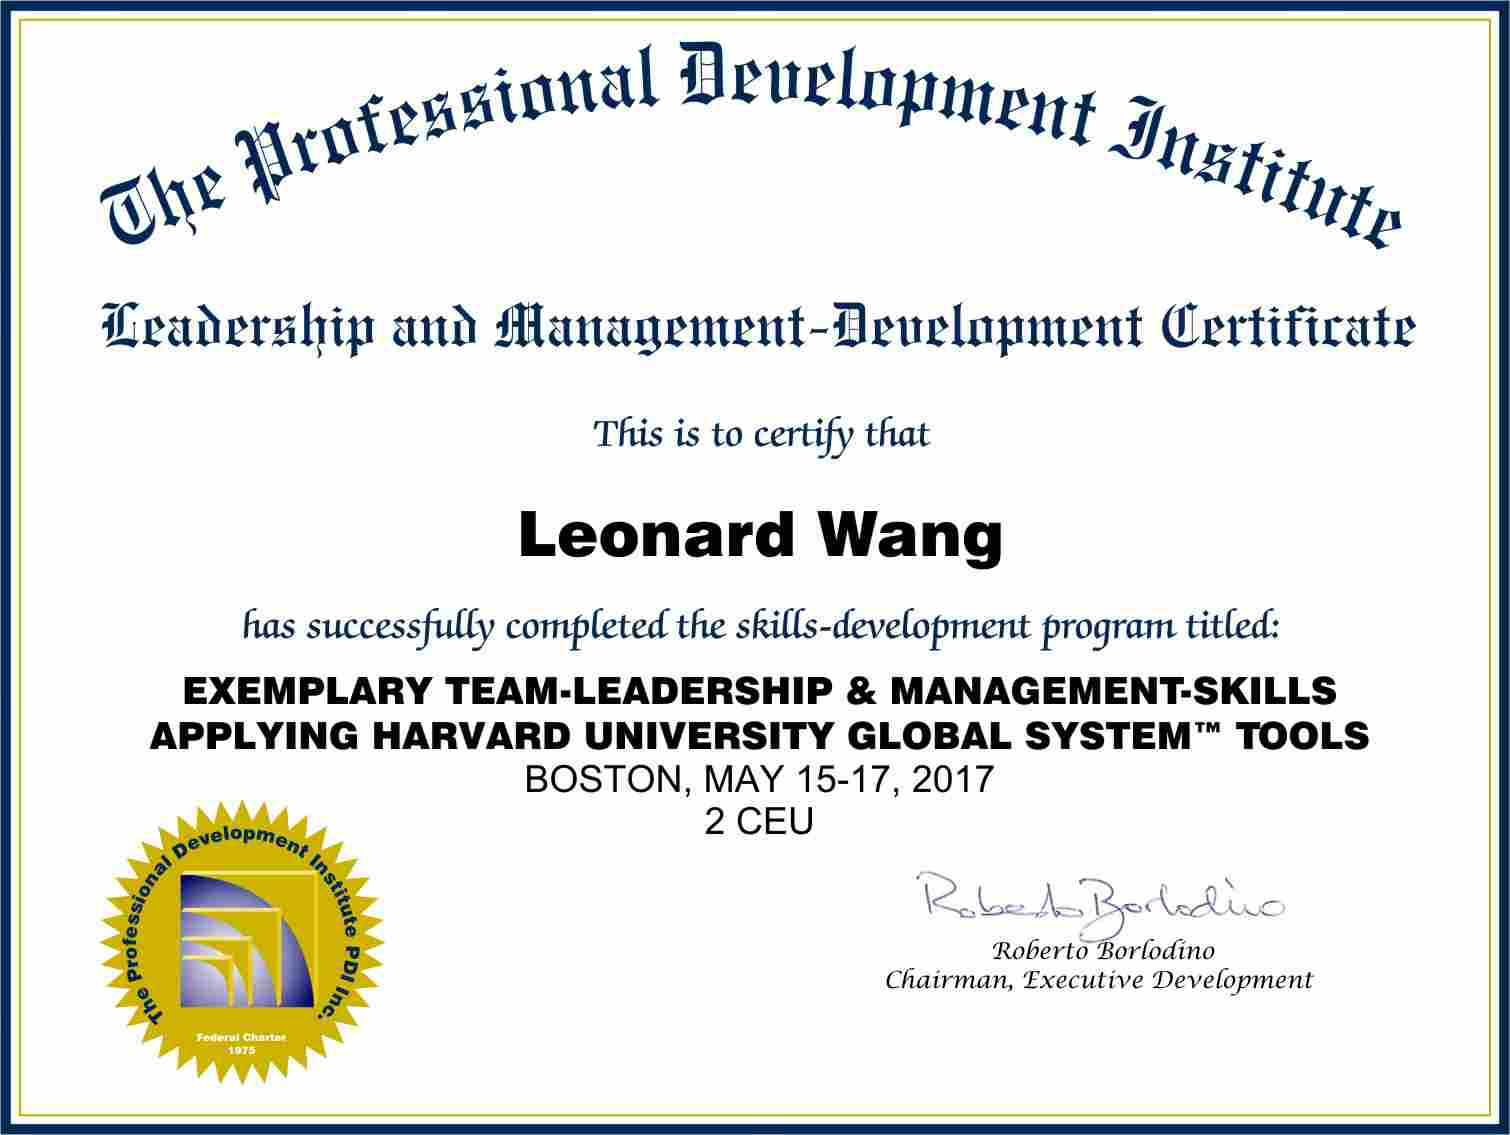 Workshop Certificate for Exemplary Team-Leadership & Management-Skills: Mastering the Competencies 				and Applying Harvard University Global System™